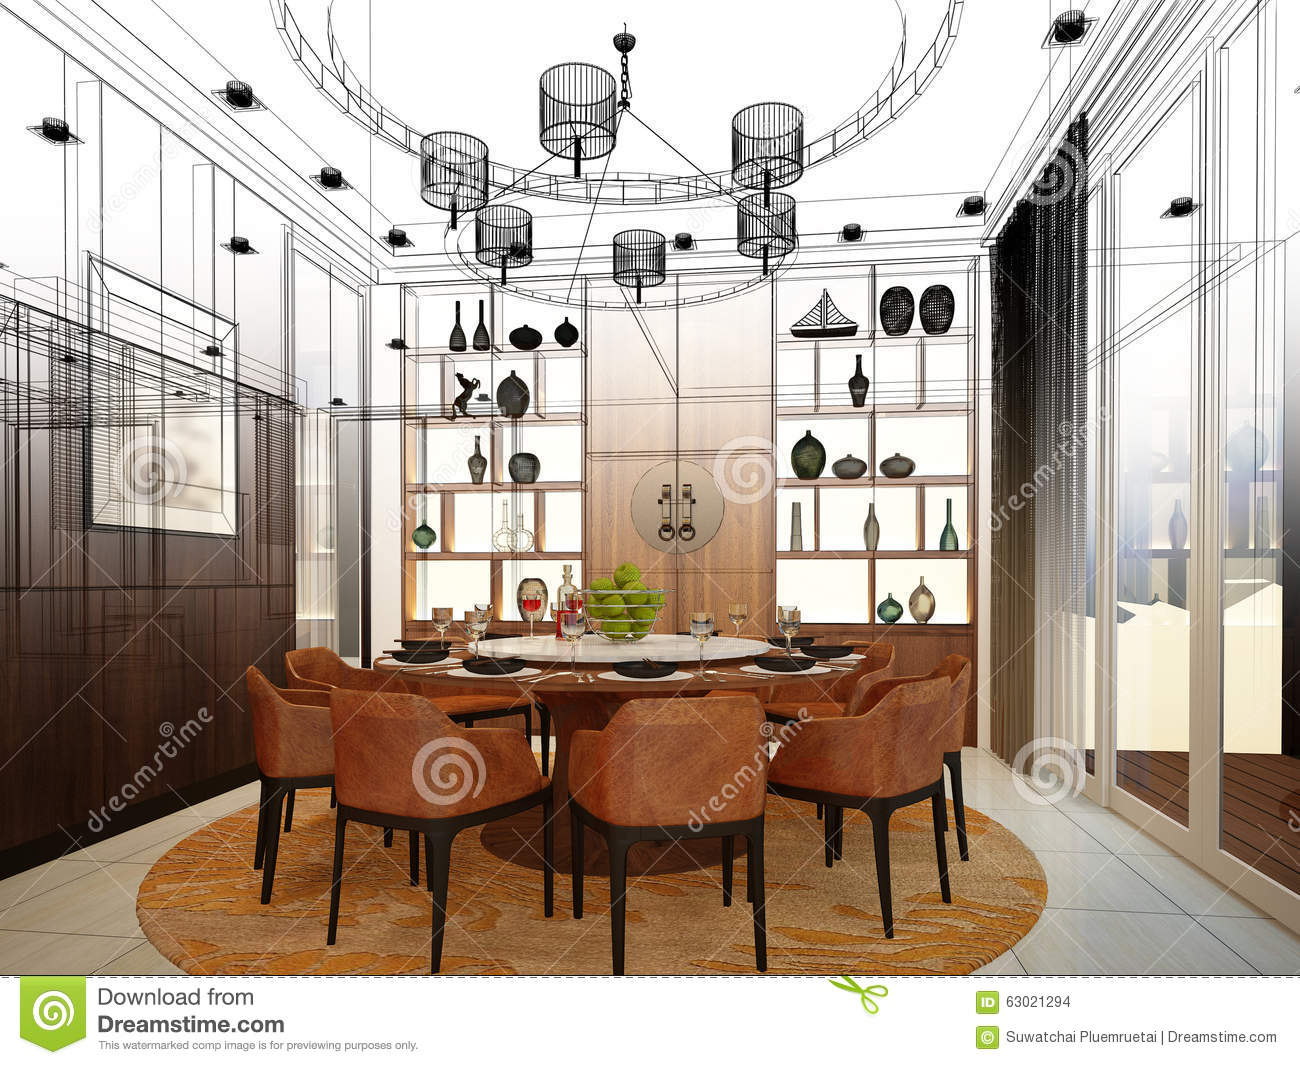 Abstract Design Dining Interior Room Sketch